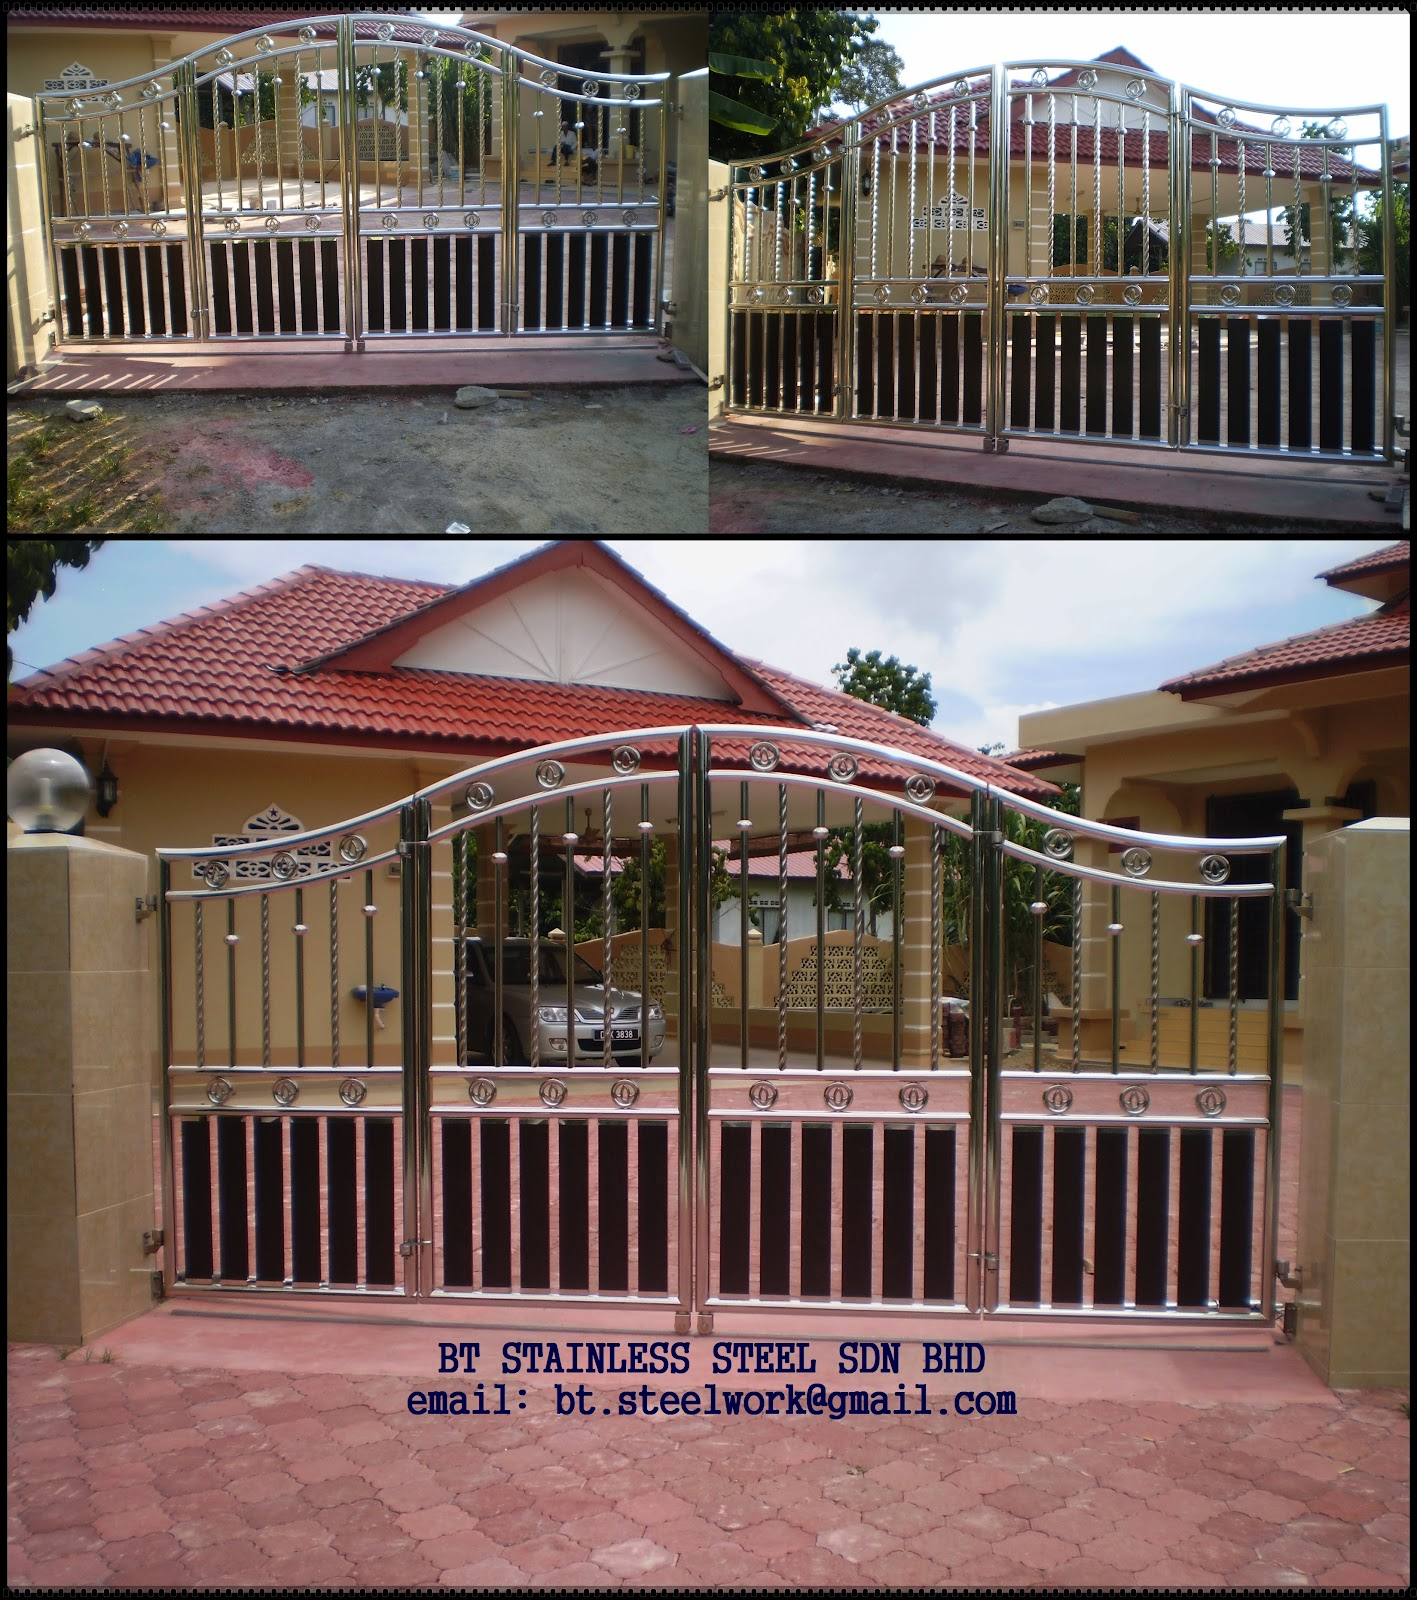 BT STAINLESS STEEL SDN BHD: BT STEEL WORK: CONTOH - CONTOH ...